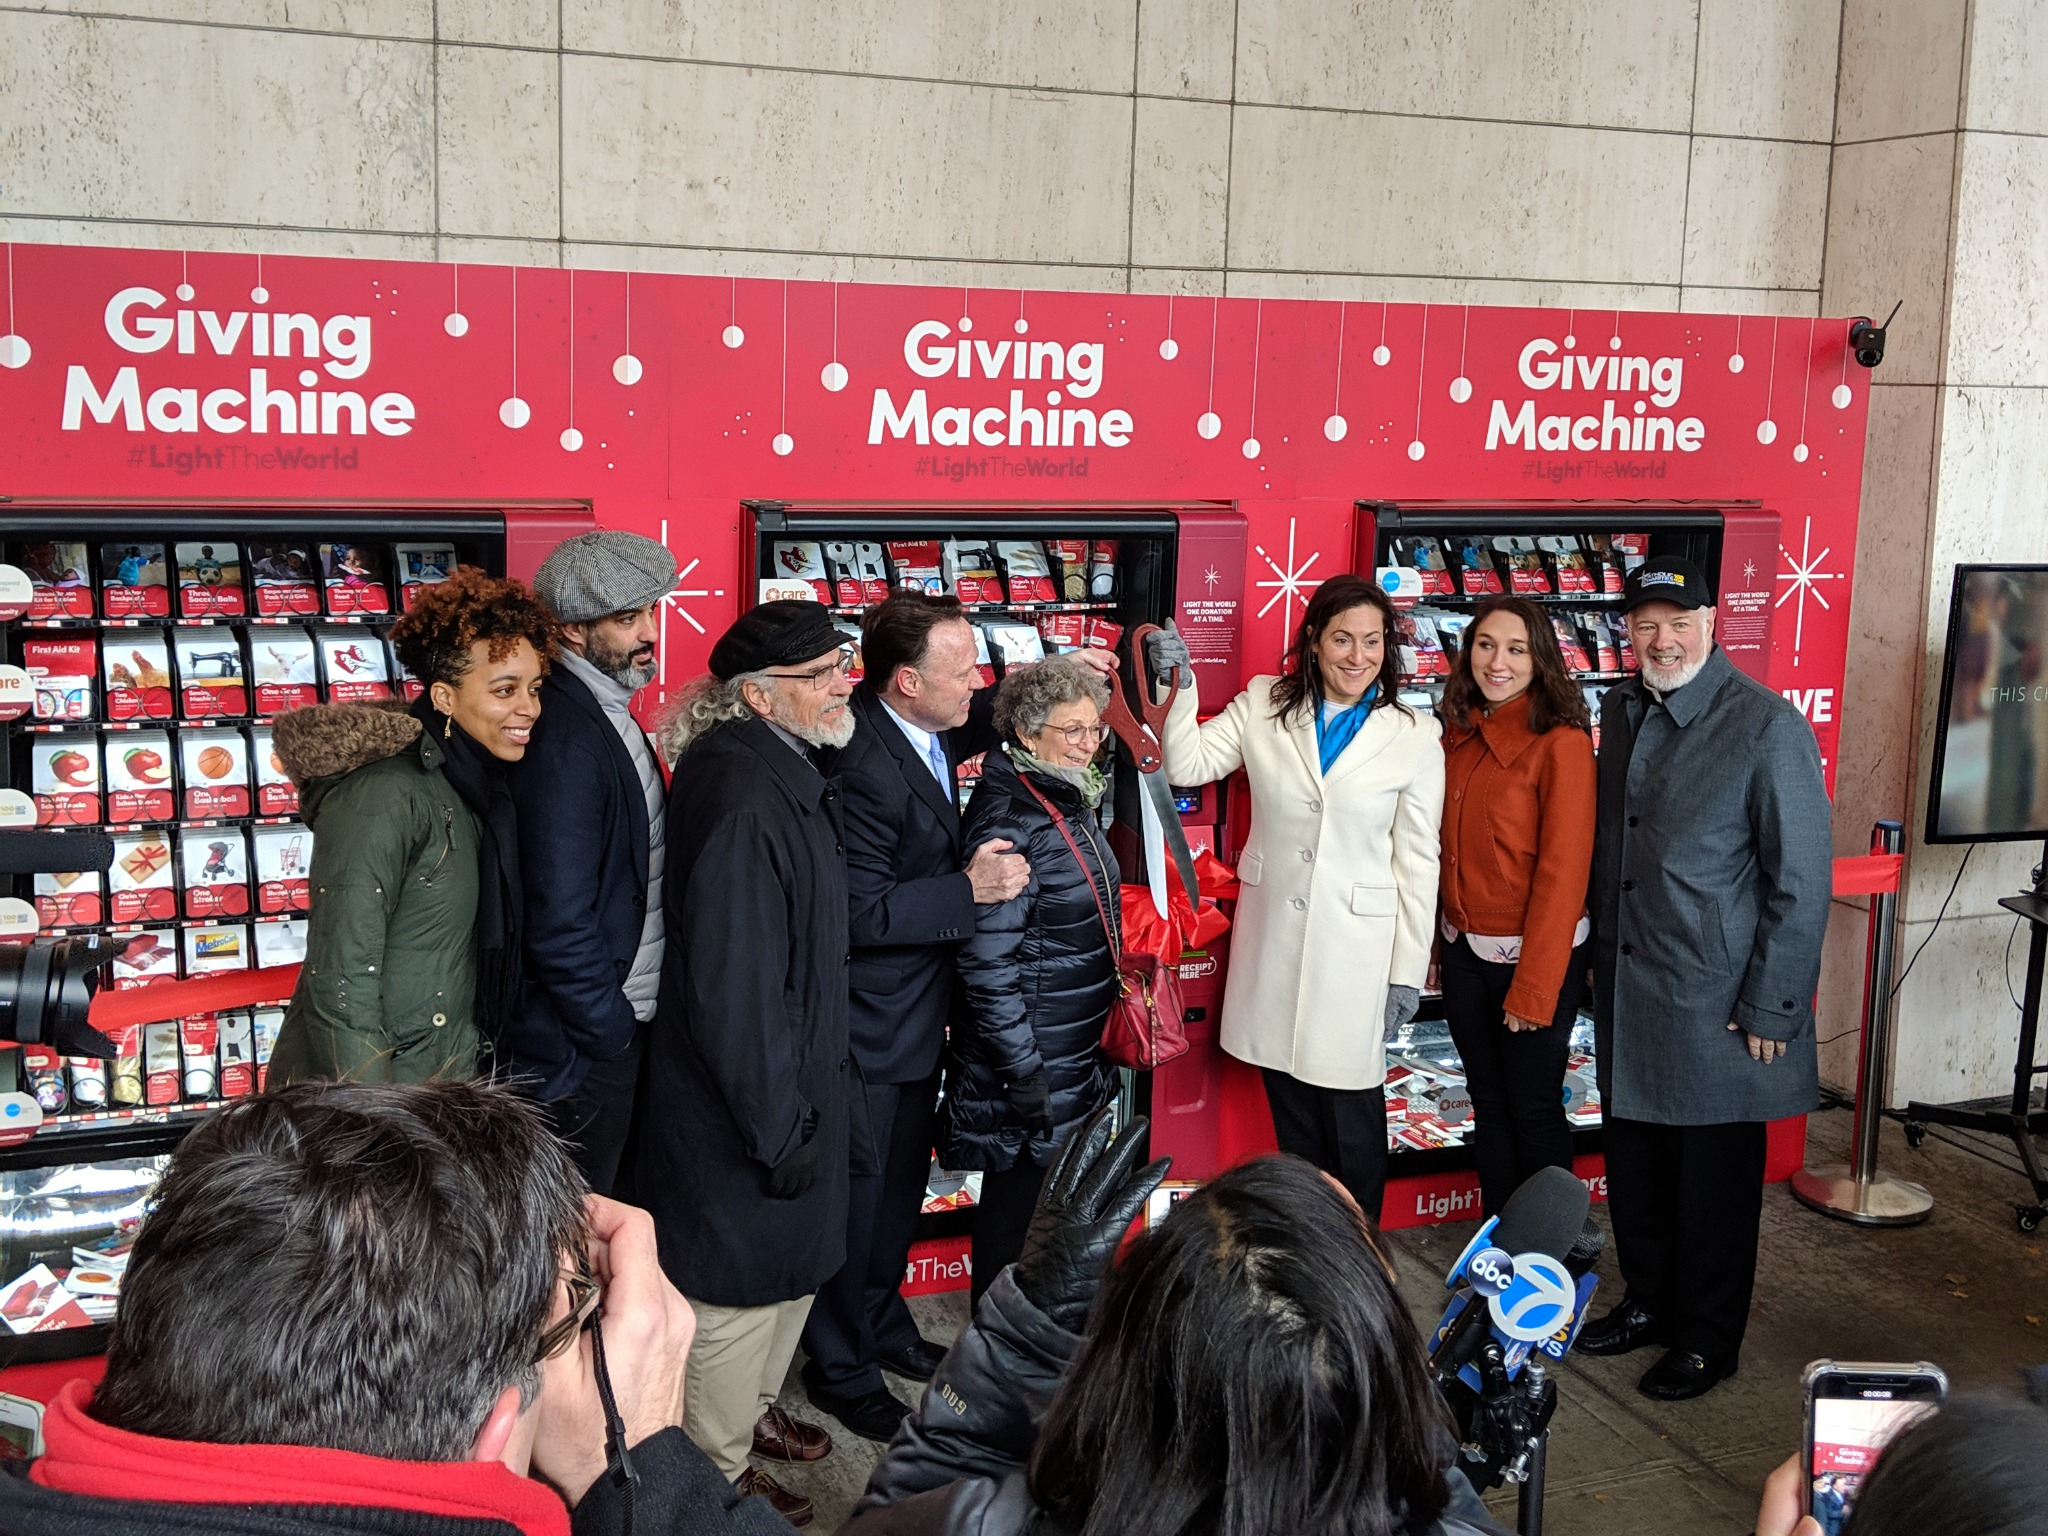 A Giving Machine in New York City.